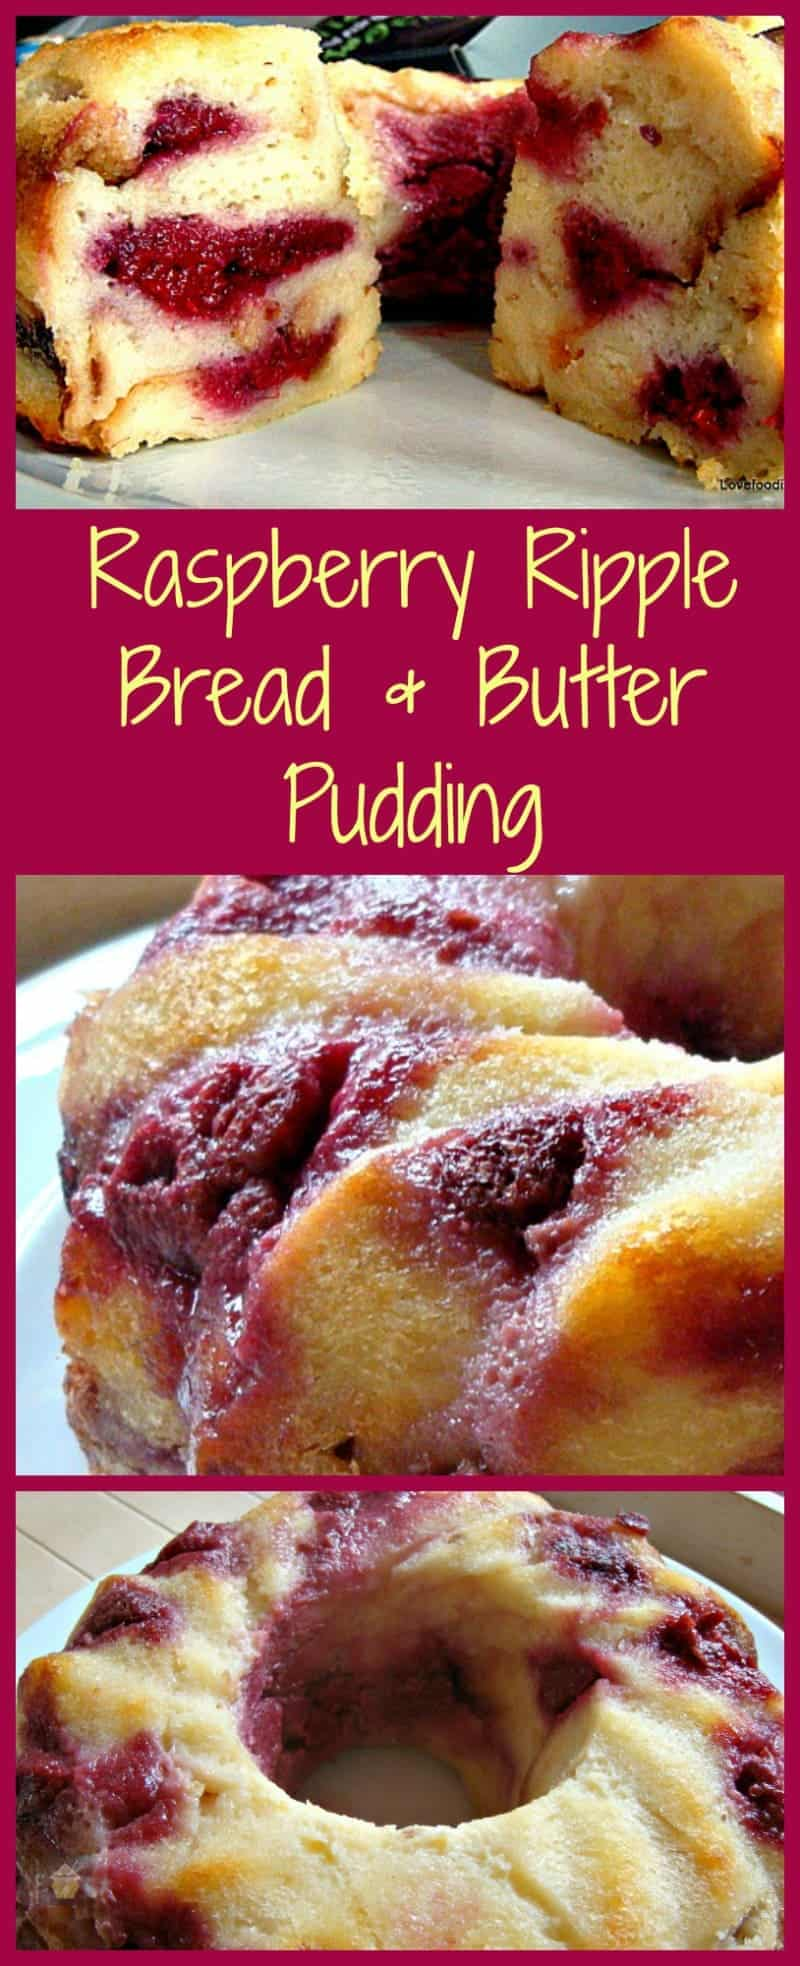 Raspberry Ripple Bread and Butter Pudding. A wonderful dessert, best served warm with a blob of ice cream, whipped cream, or both!Similar to French Toast only much fluffier.